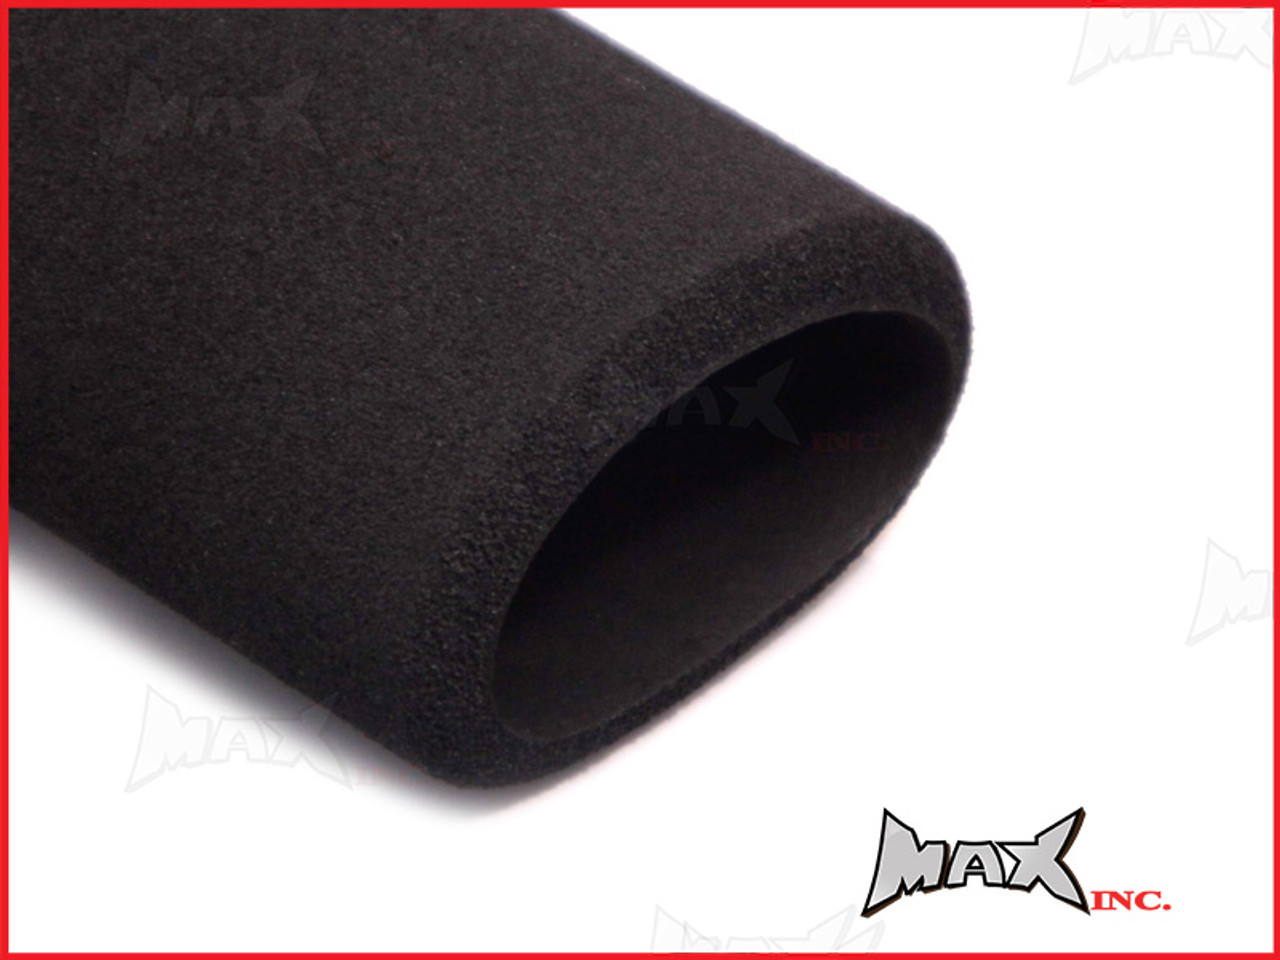 Slip-on Foam Comfort Grip Covers - Fits ALL Motorcycles & Scooters